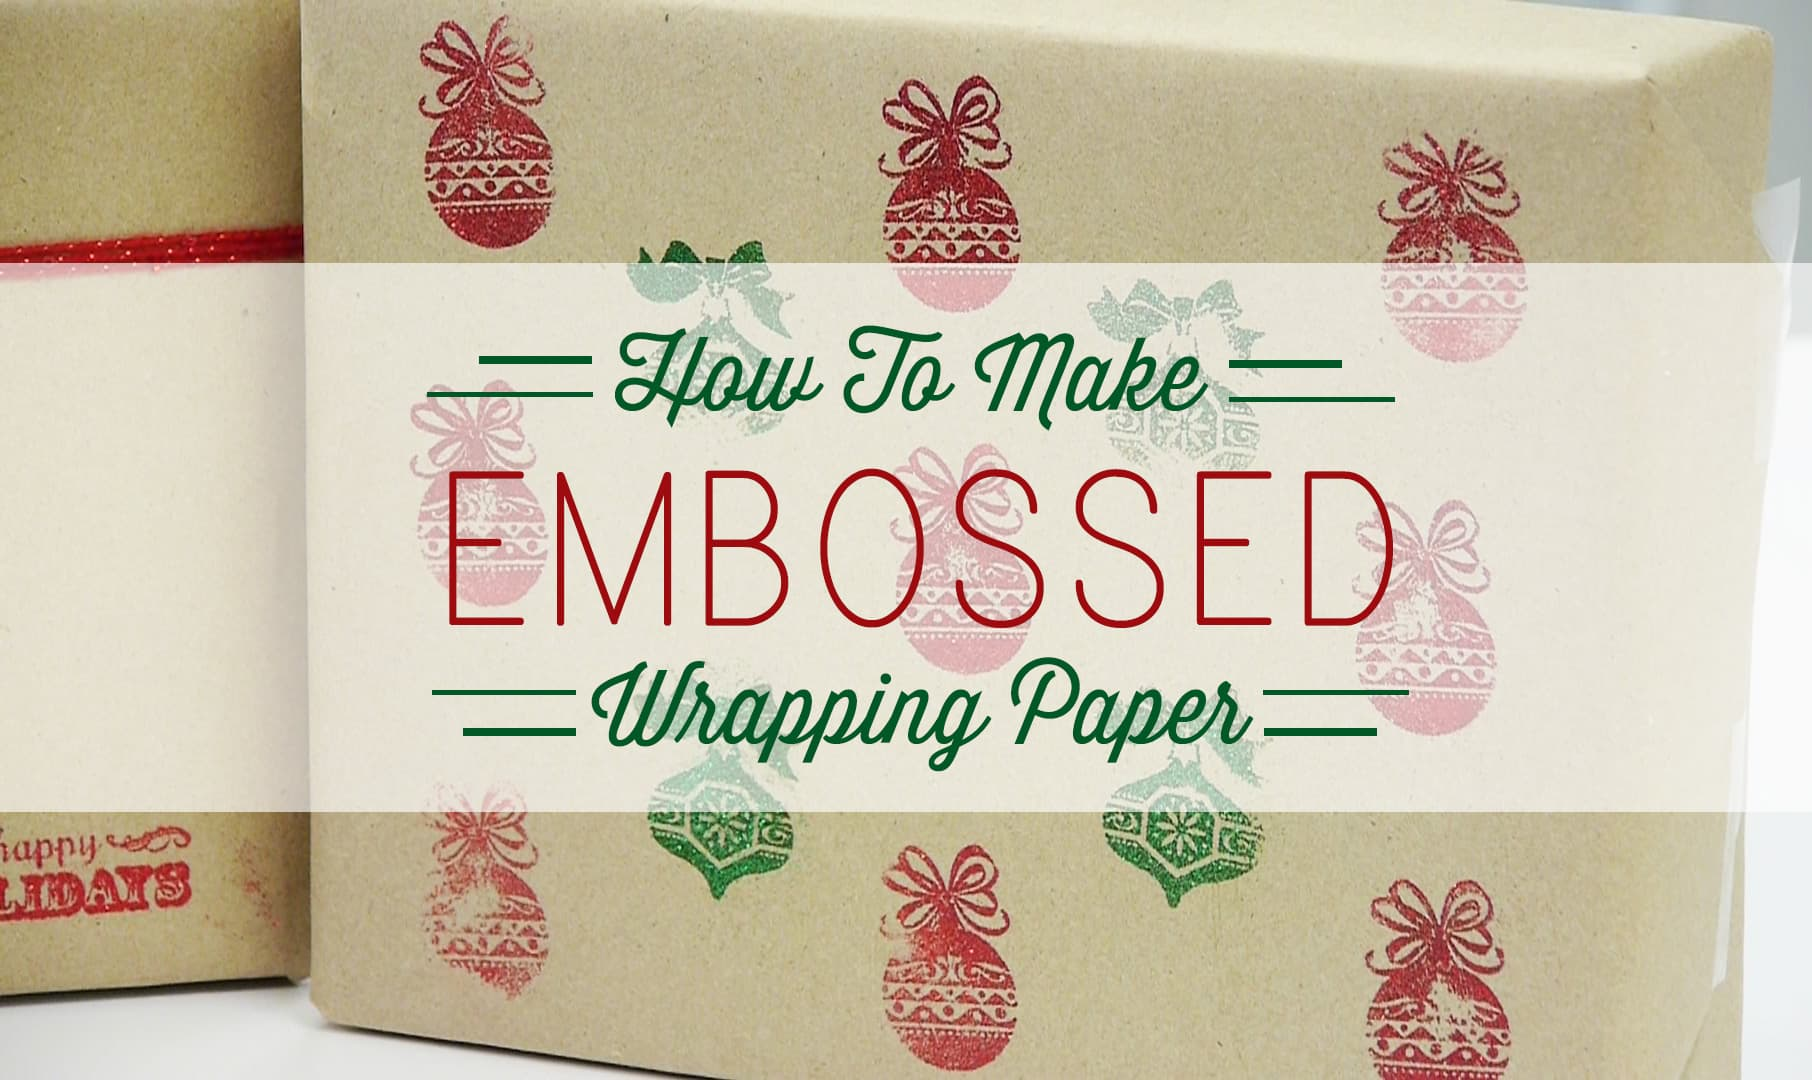 Embossed-Wrapping-Paper